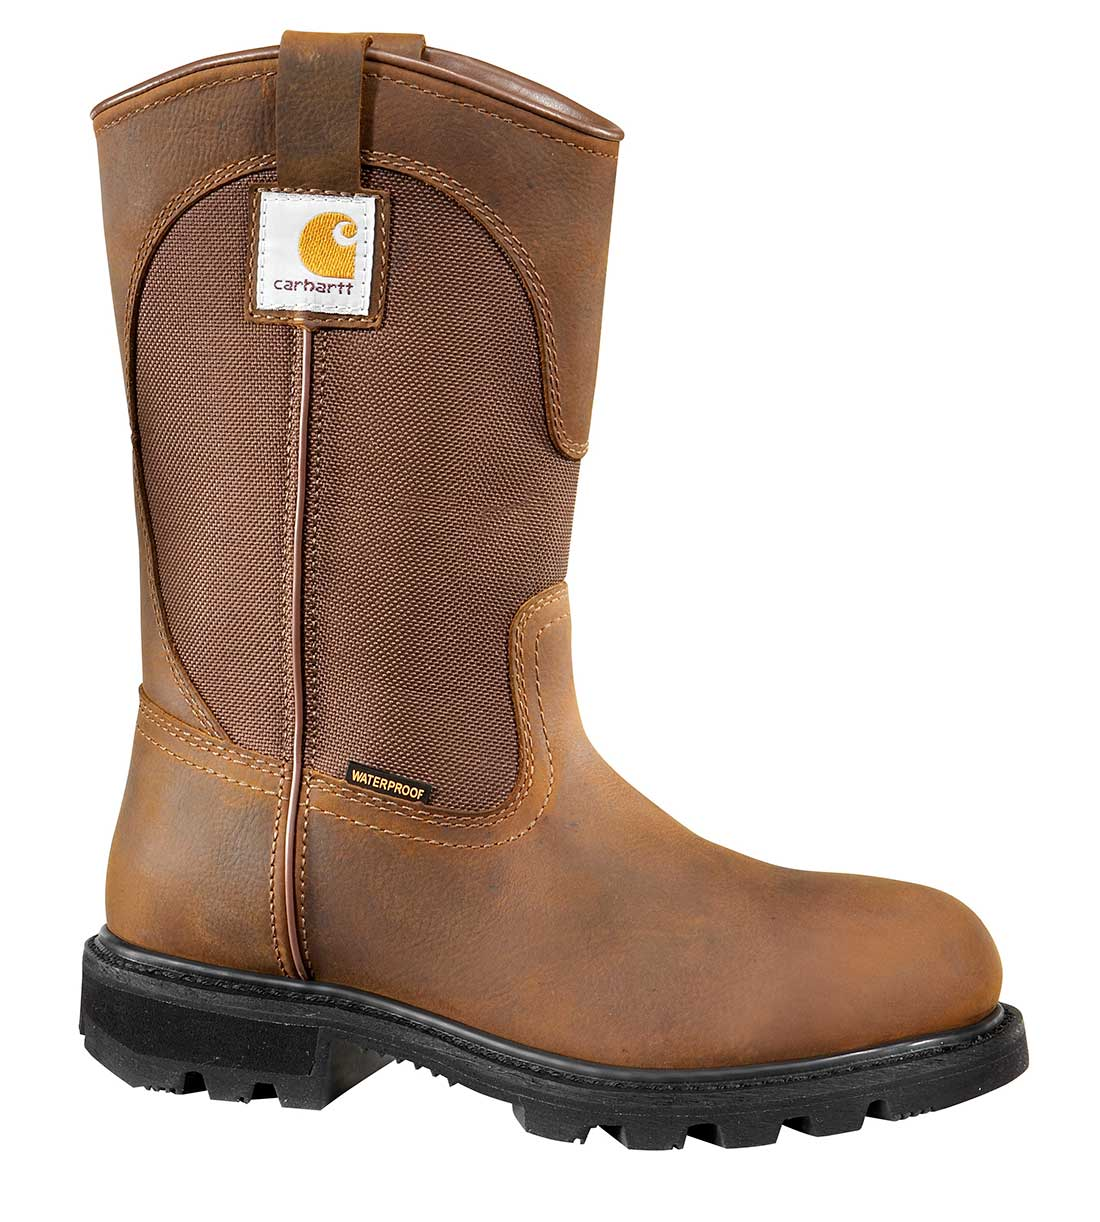 Carhartt Traditional Womens Brn Leather/Brn Fabric Lug Bottom Waterproof Steel Safety Toe 10-inch Work Wellington